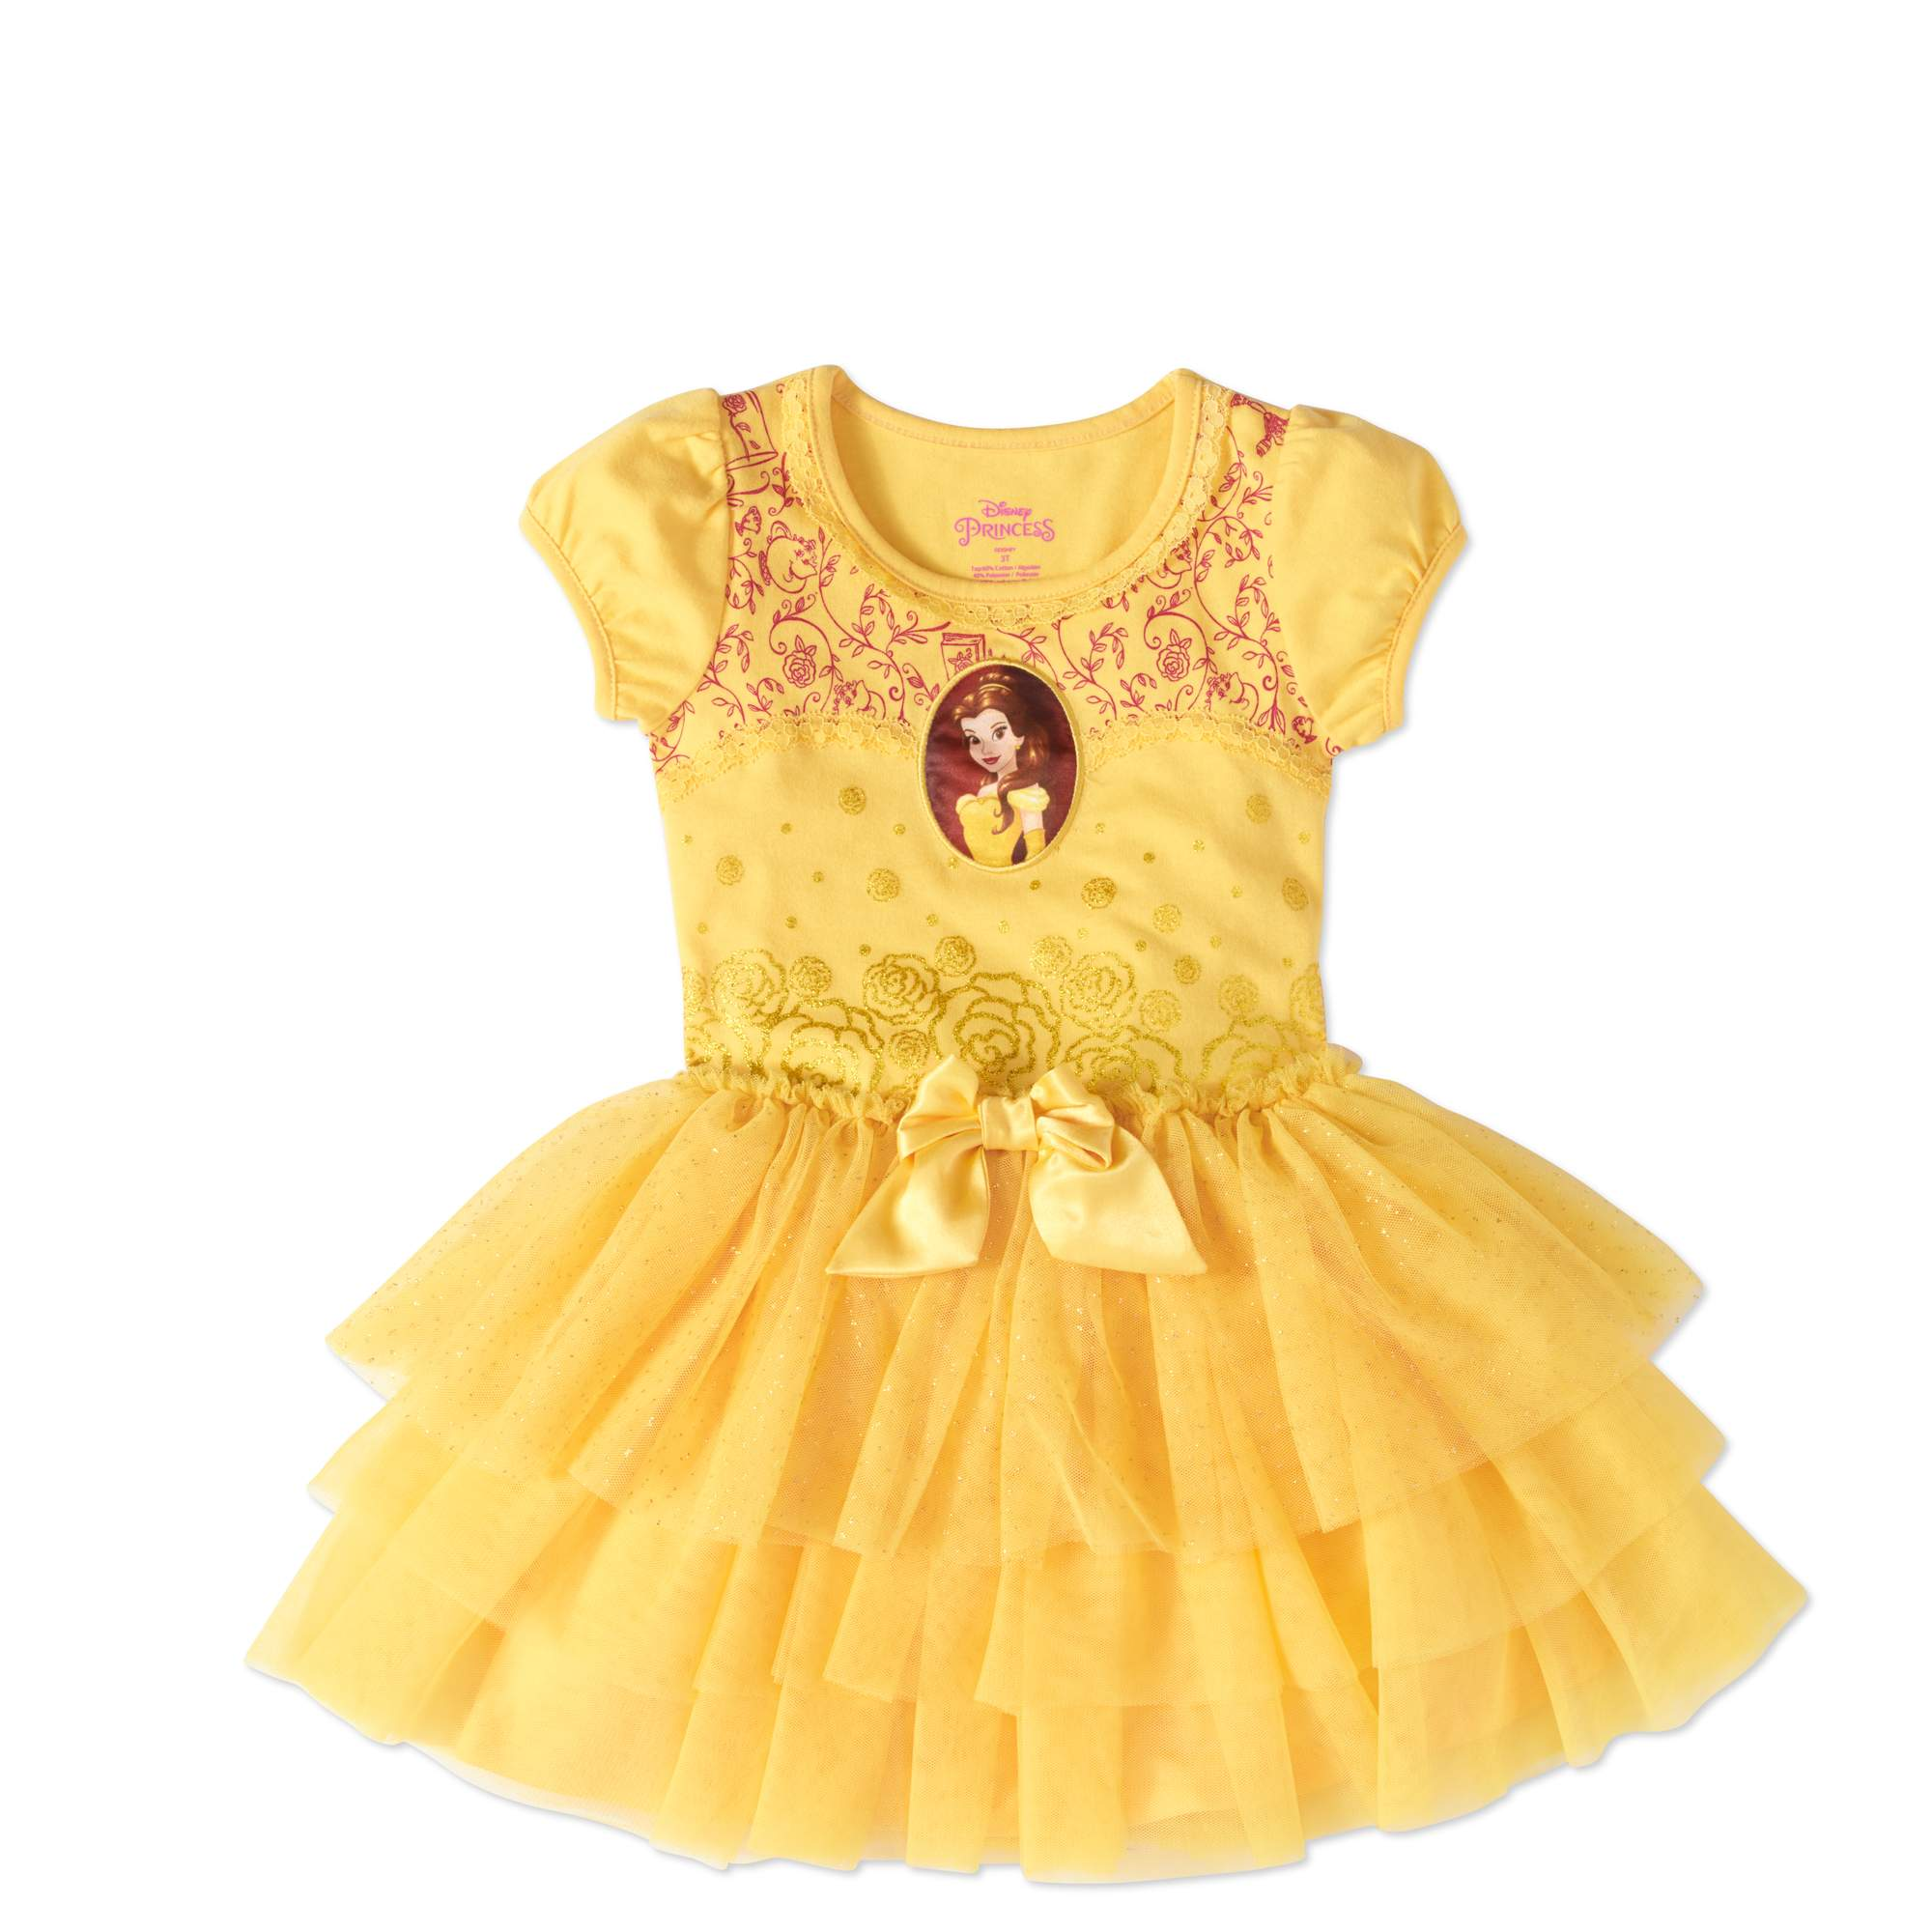 "Belle ""Beauty and the Beast"" Toddler Girl Tutu Dress"